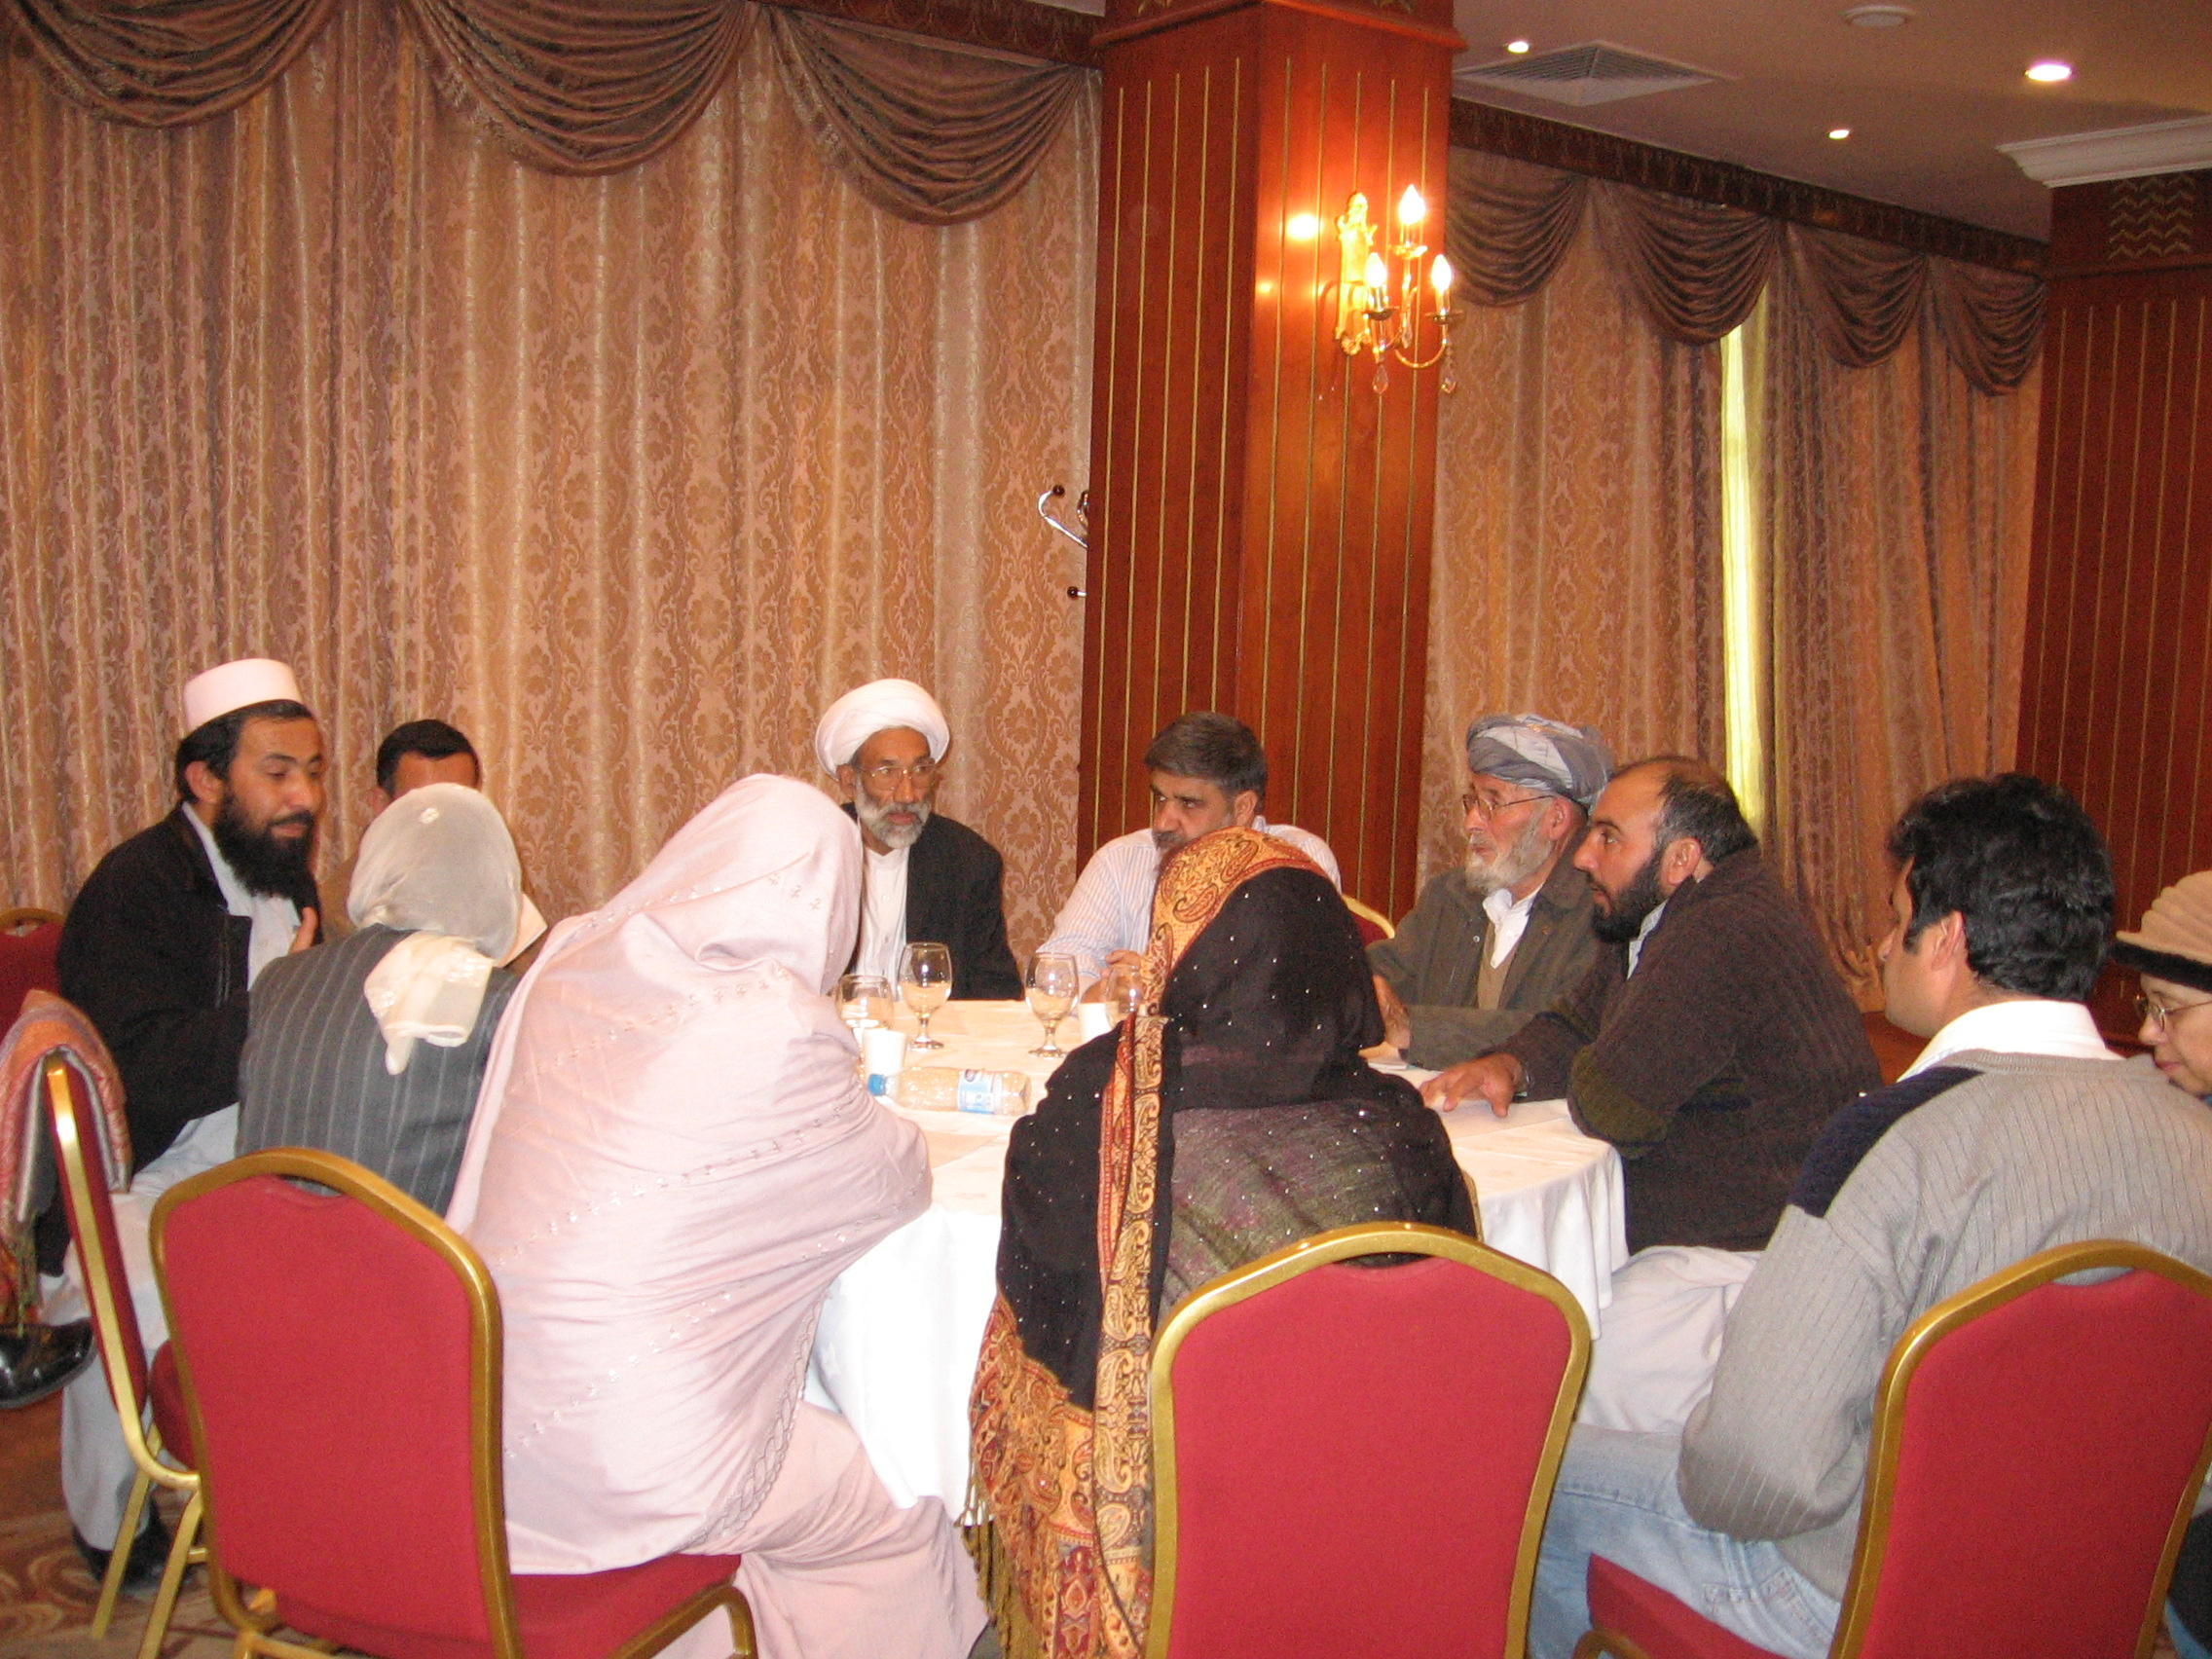 Roundtable discussion with conference participants